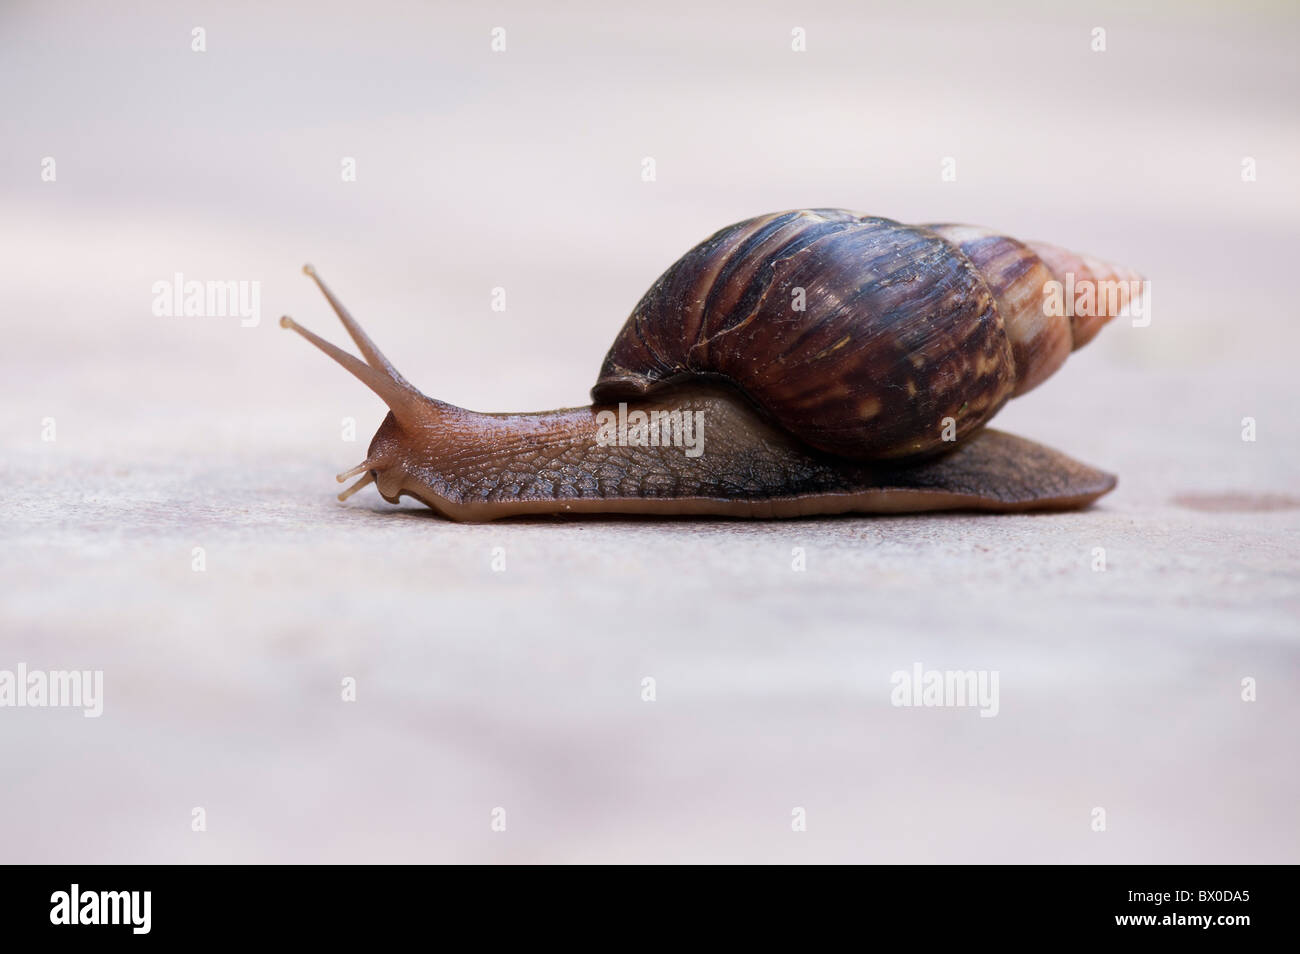 Achatina fulica, East African land snail, or Giant African land snail in India - Stock Image